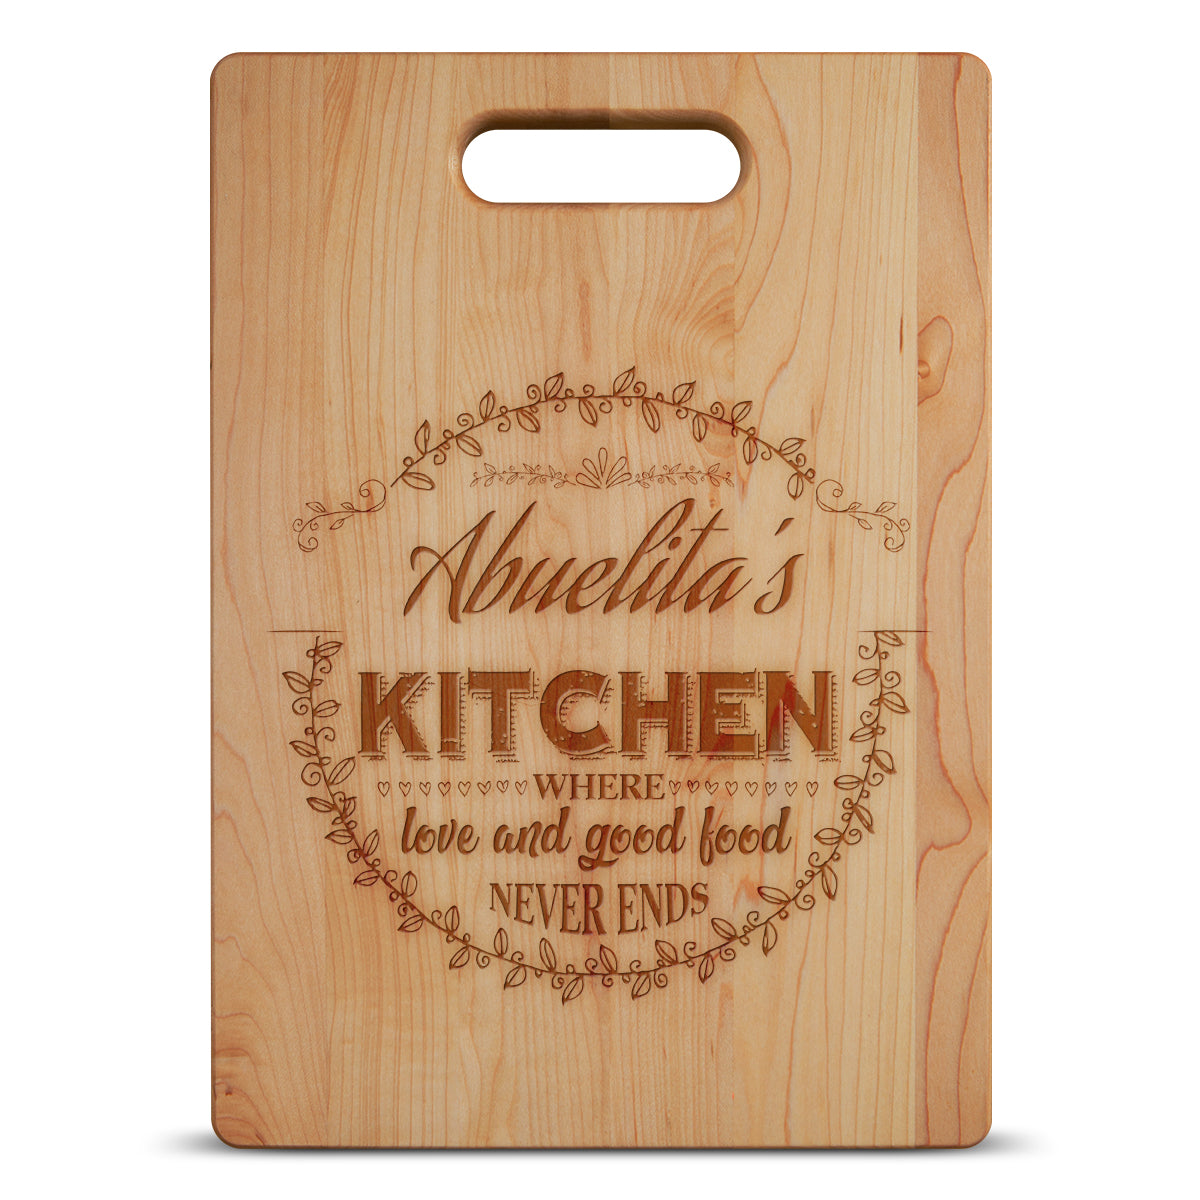 Abuelita's Kitchen Personalized Grandma Maple Cutting Board